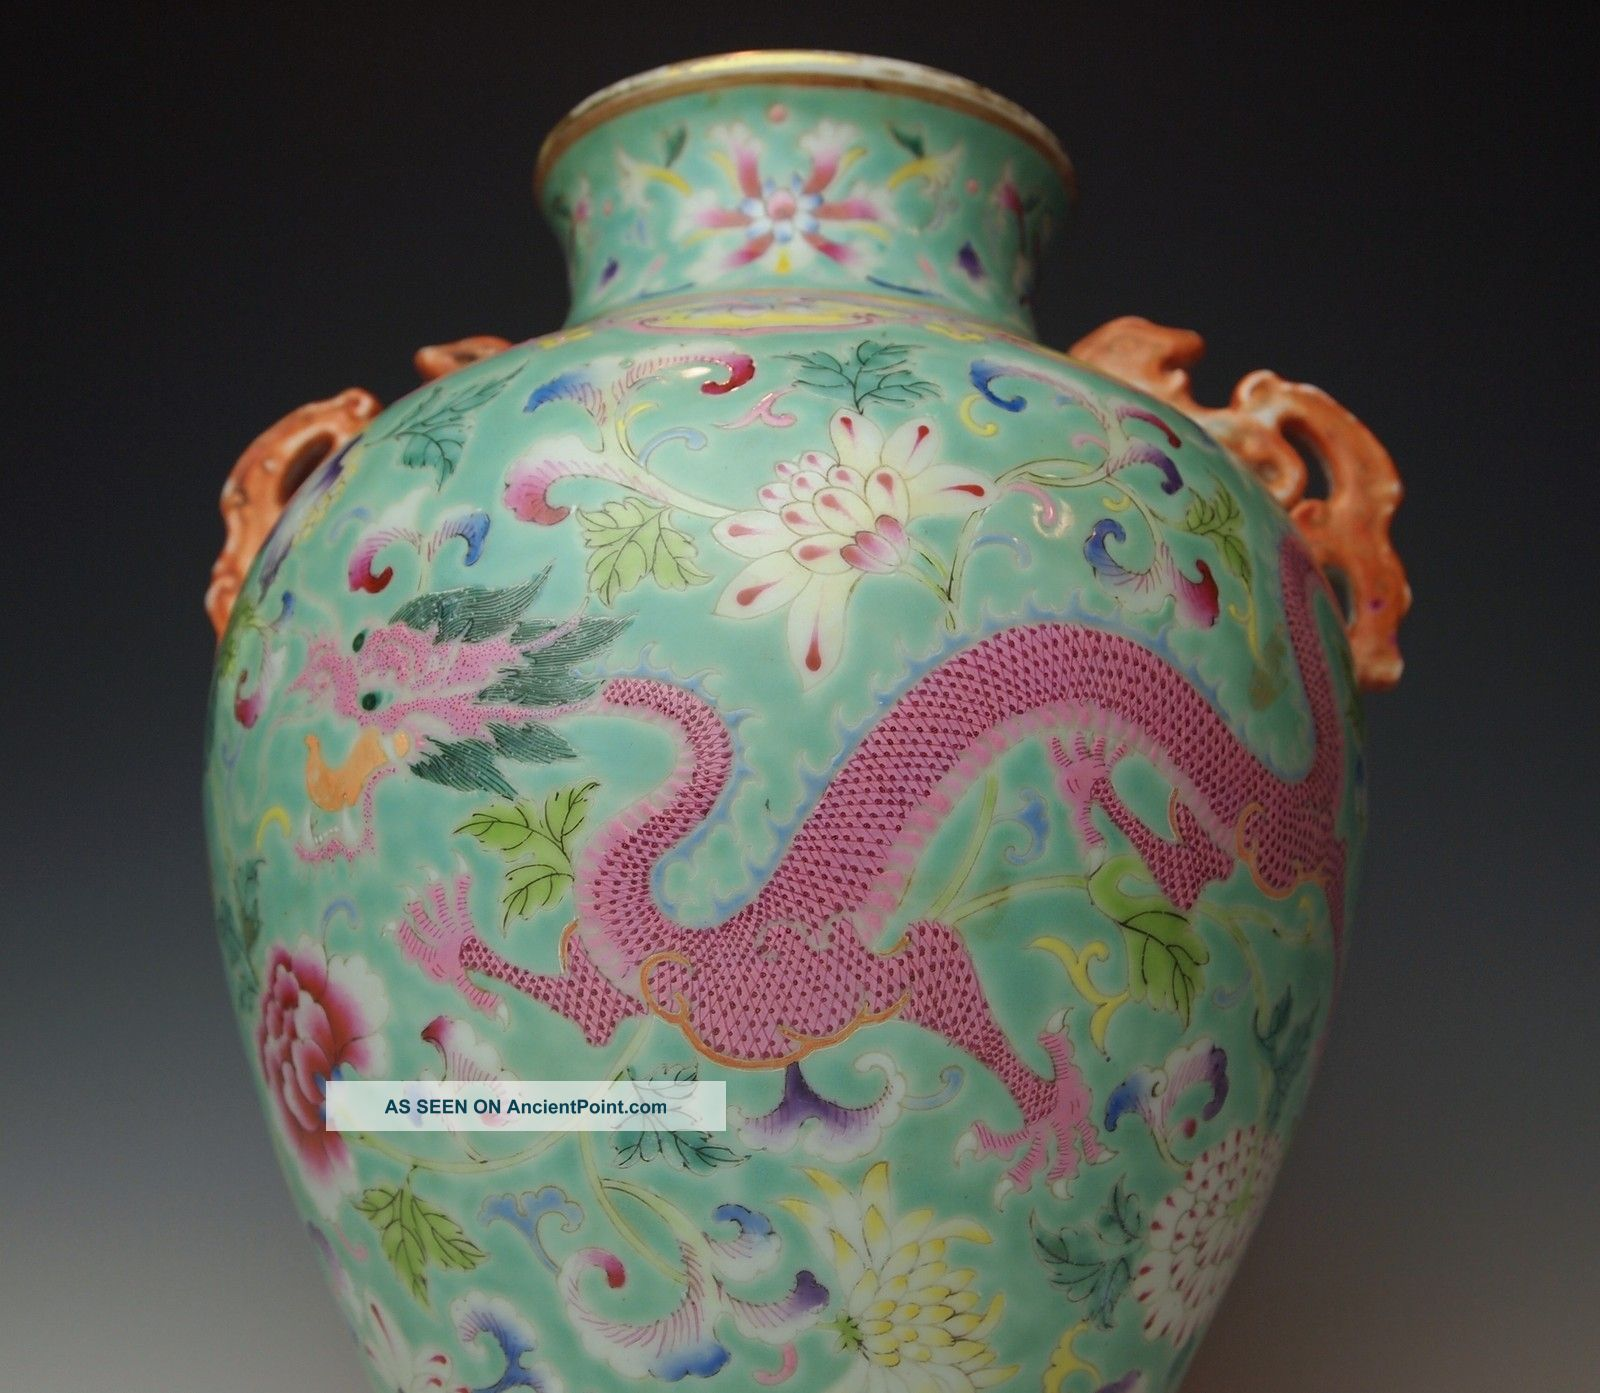 Exquisite Antique Chinese Porcelain Famille Rose Turquoise Vase Qing Dynasty Vases photo